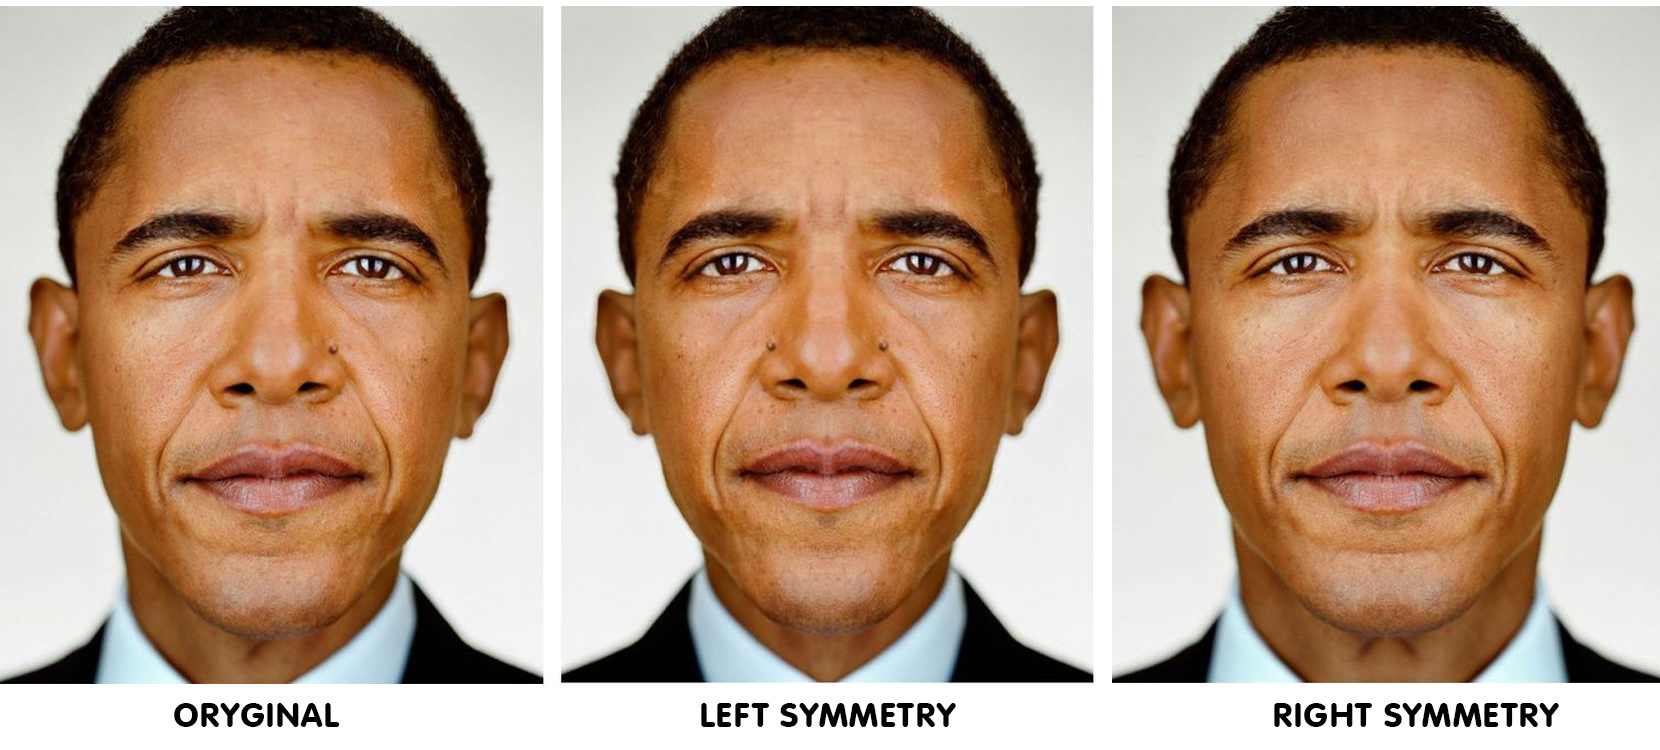 We Photoshopped Our Faces To Be Symmetrical - buzzfeed.com